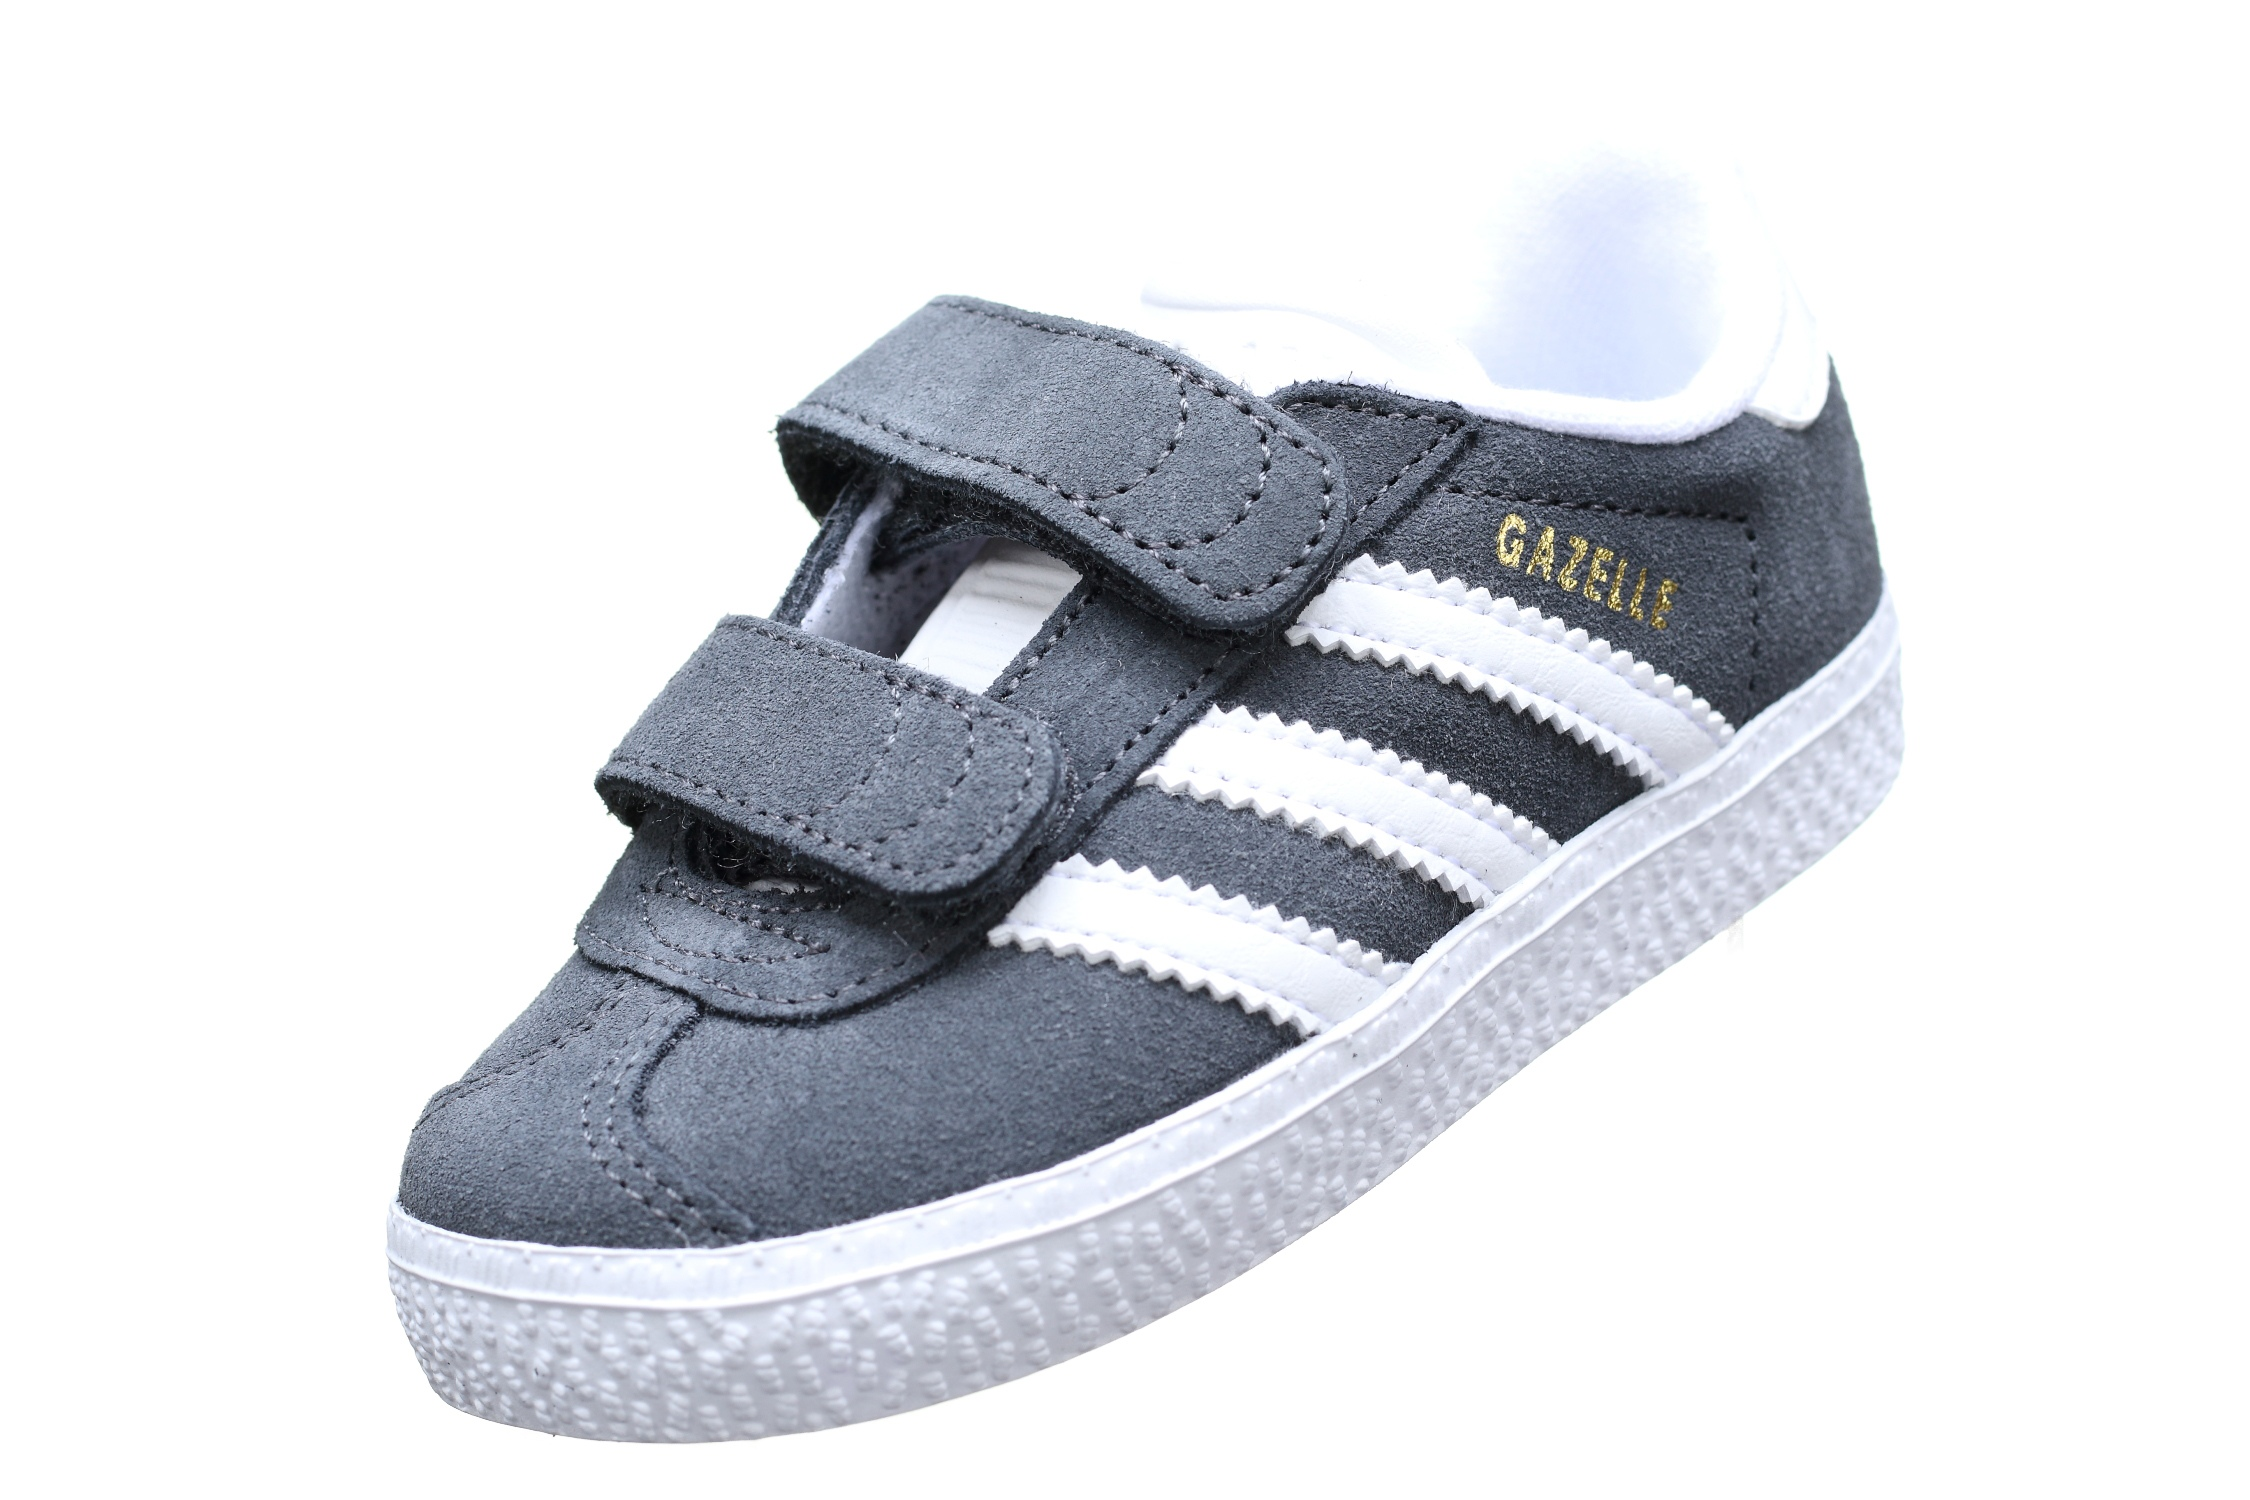 https://www.leadermode.com/157166/adidas-gazelle-cf-i-cq31340-anthracite.jpg